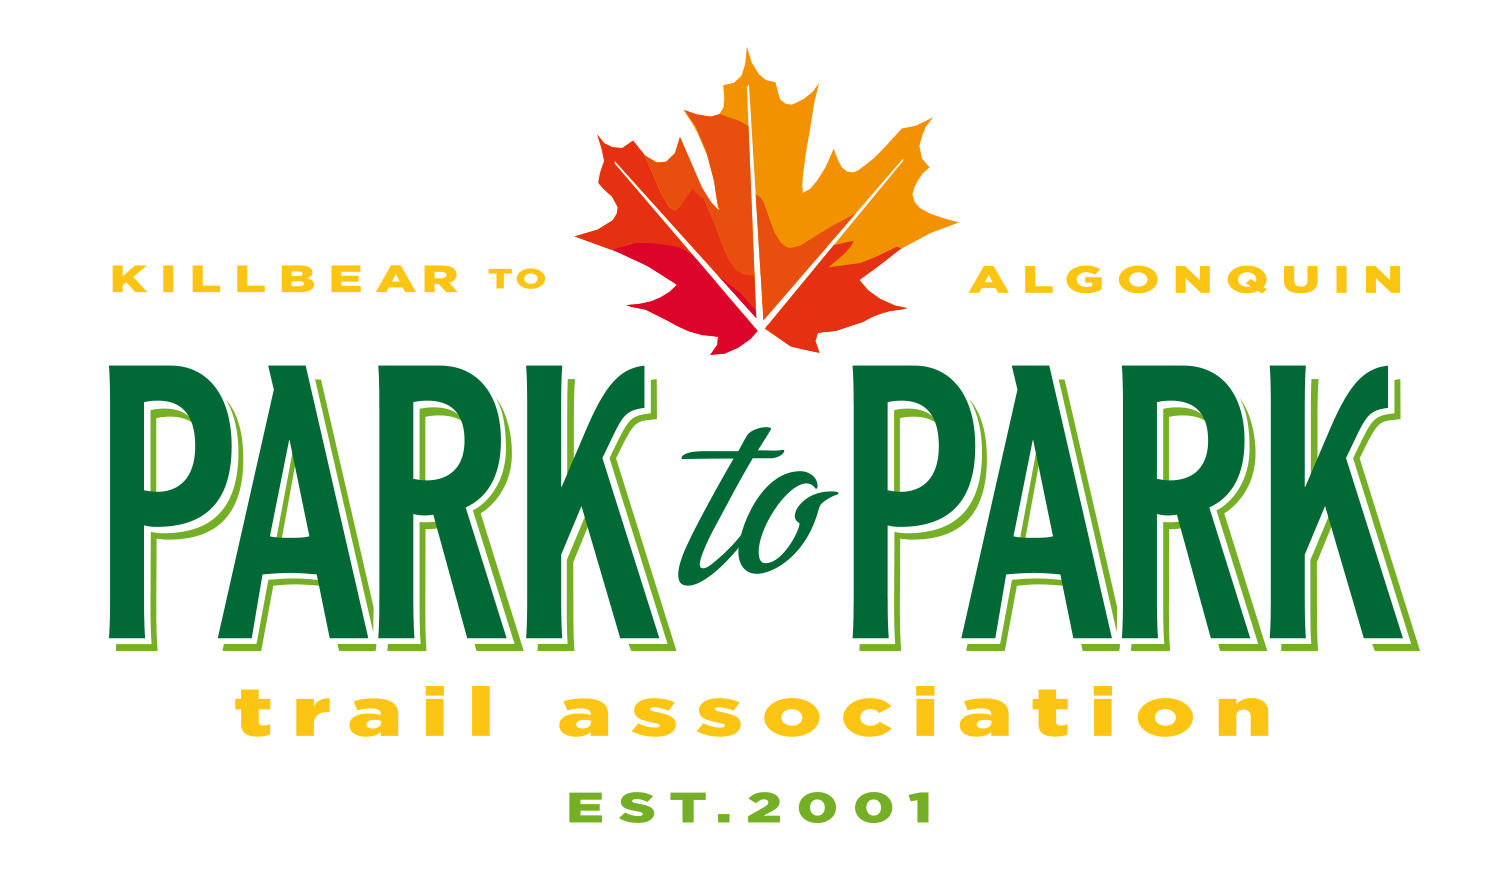 Park to Park Trail